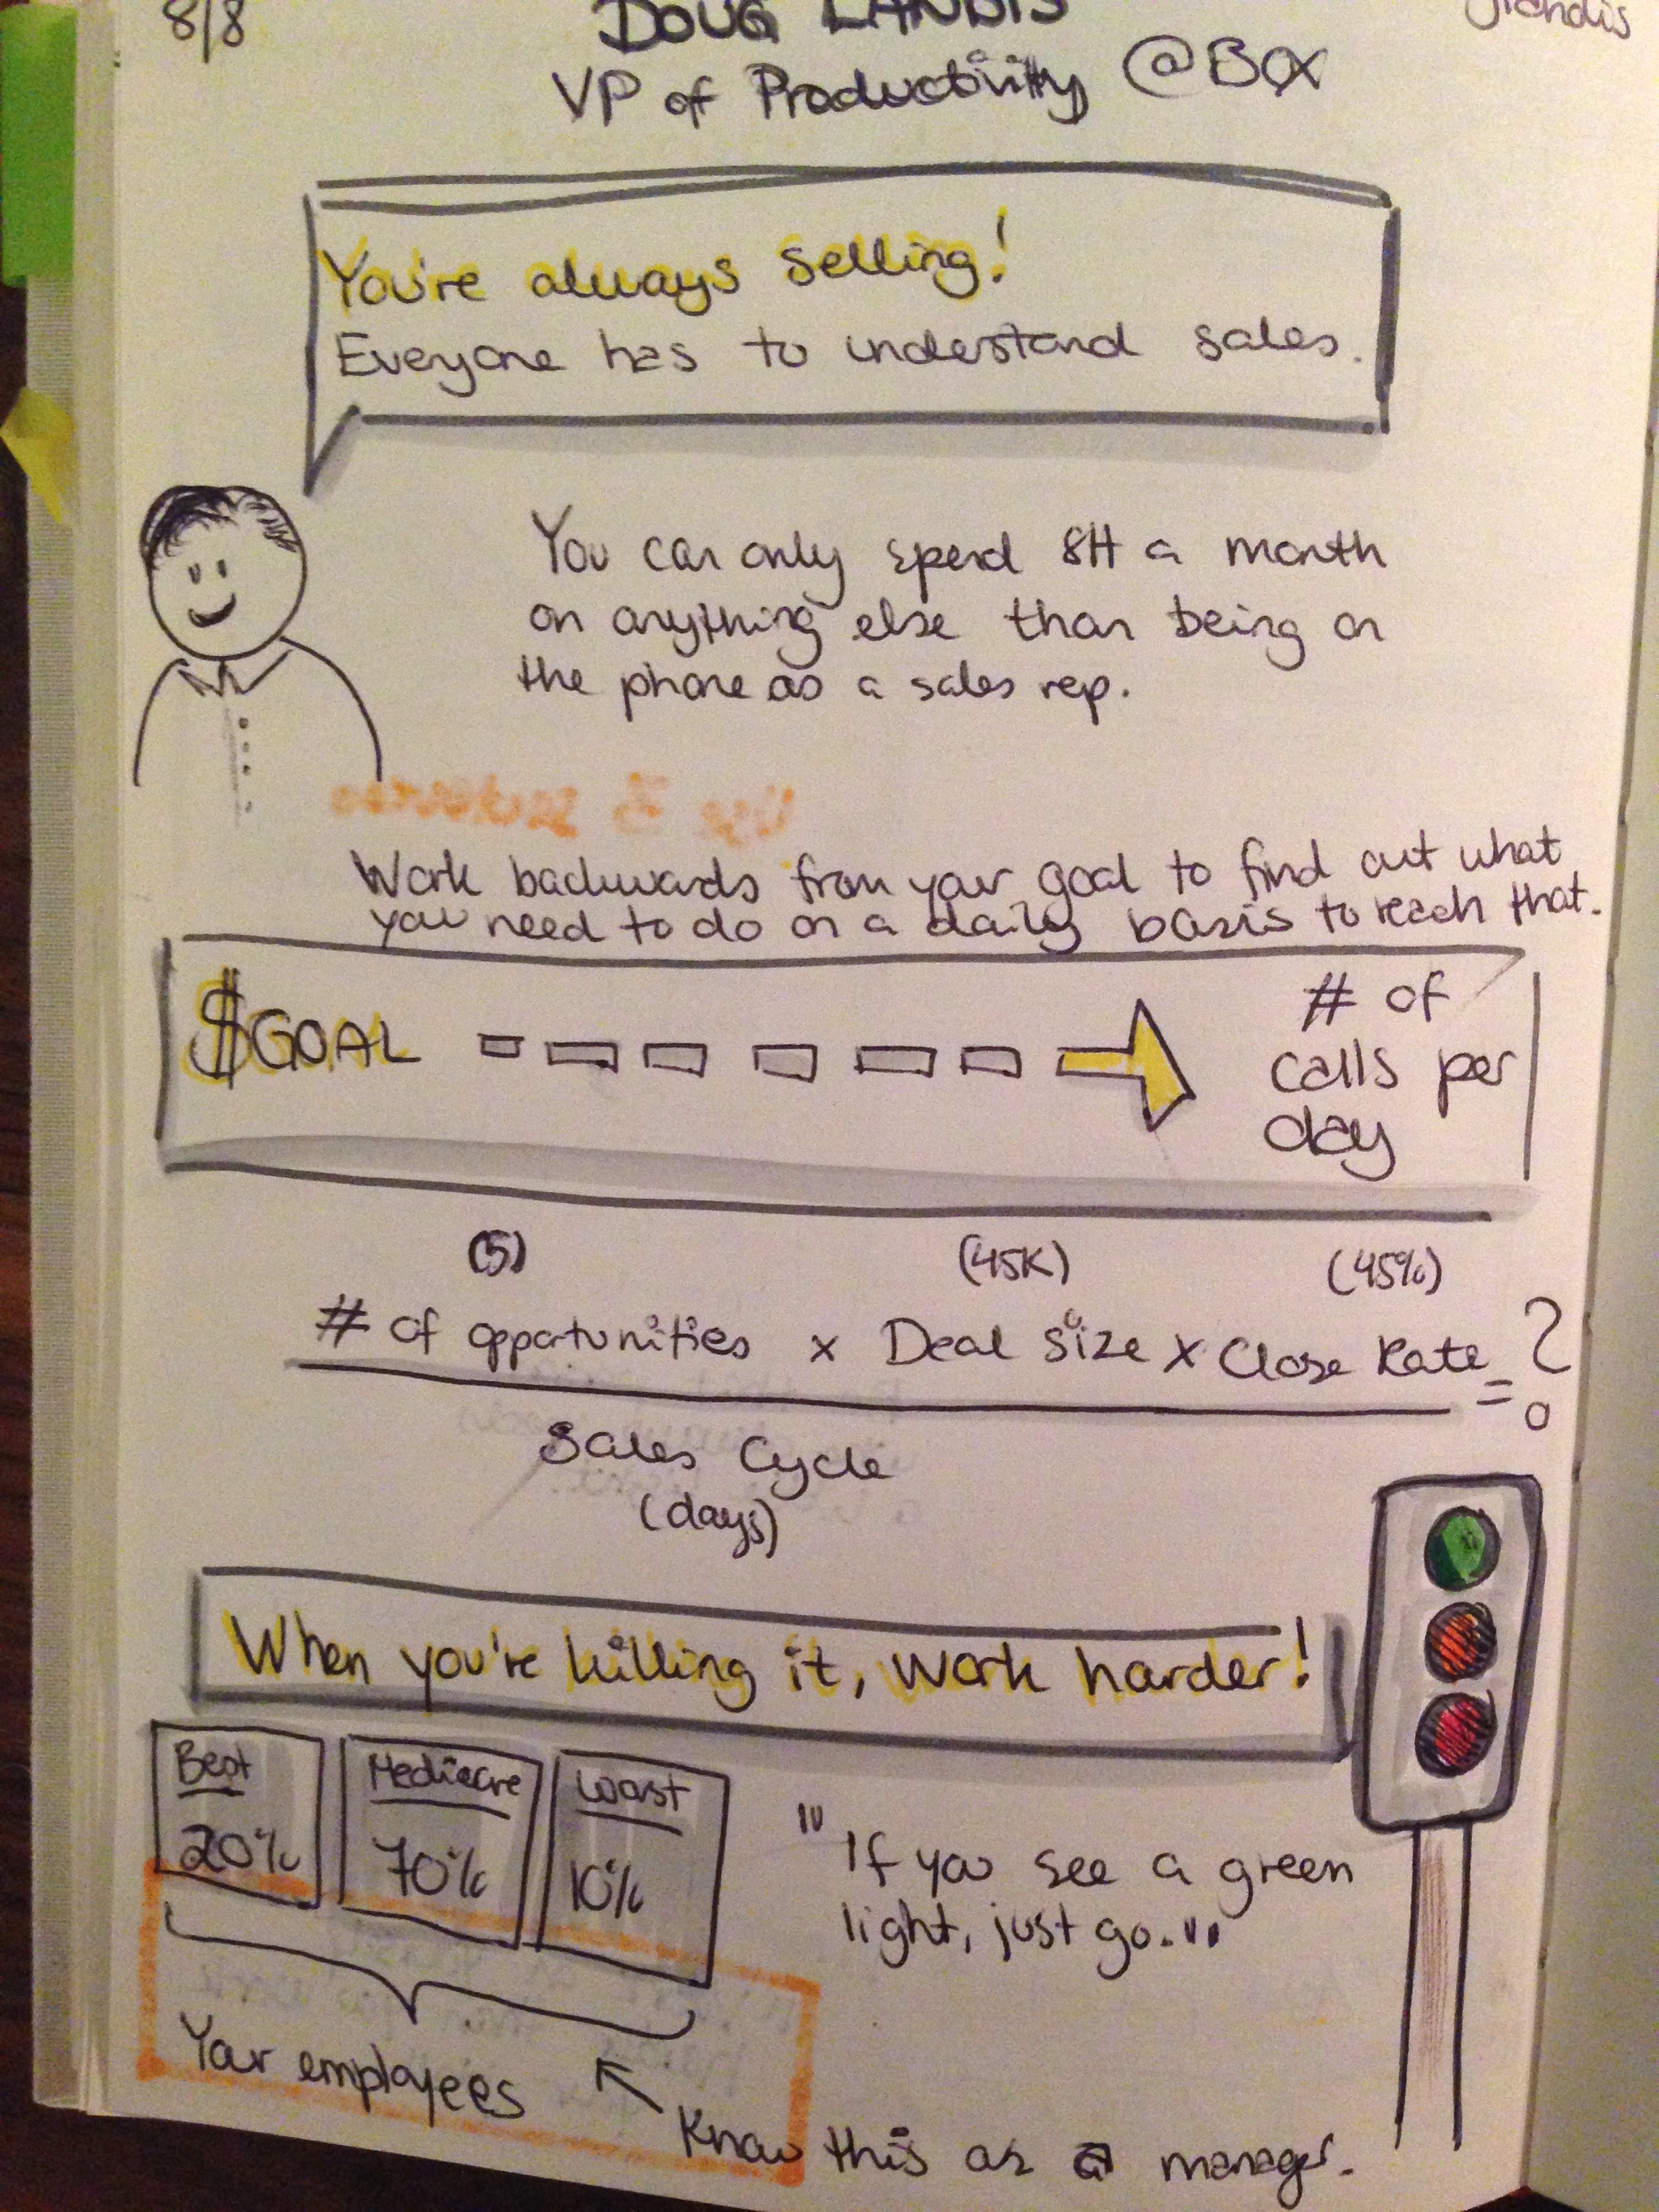 Notes from listening to Doug Landis.